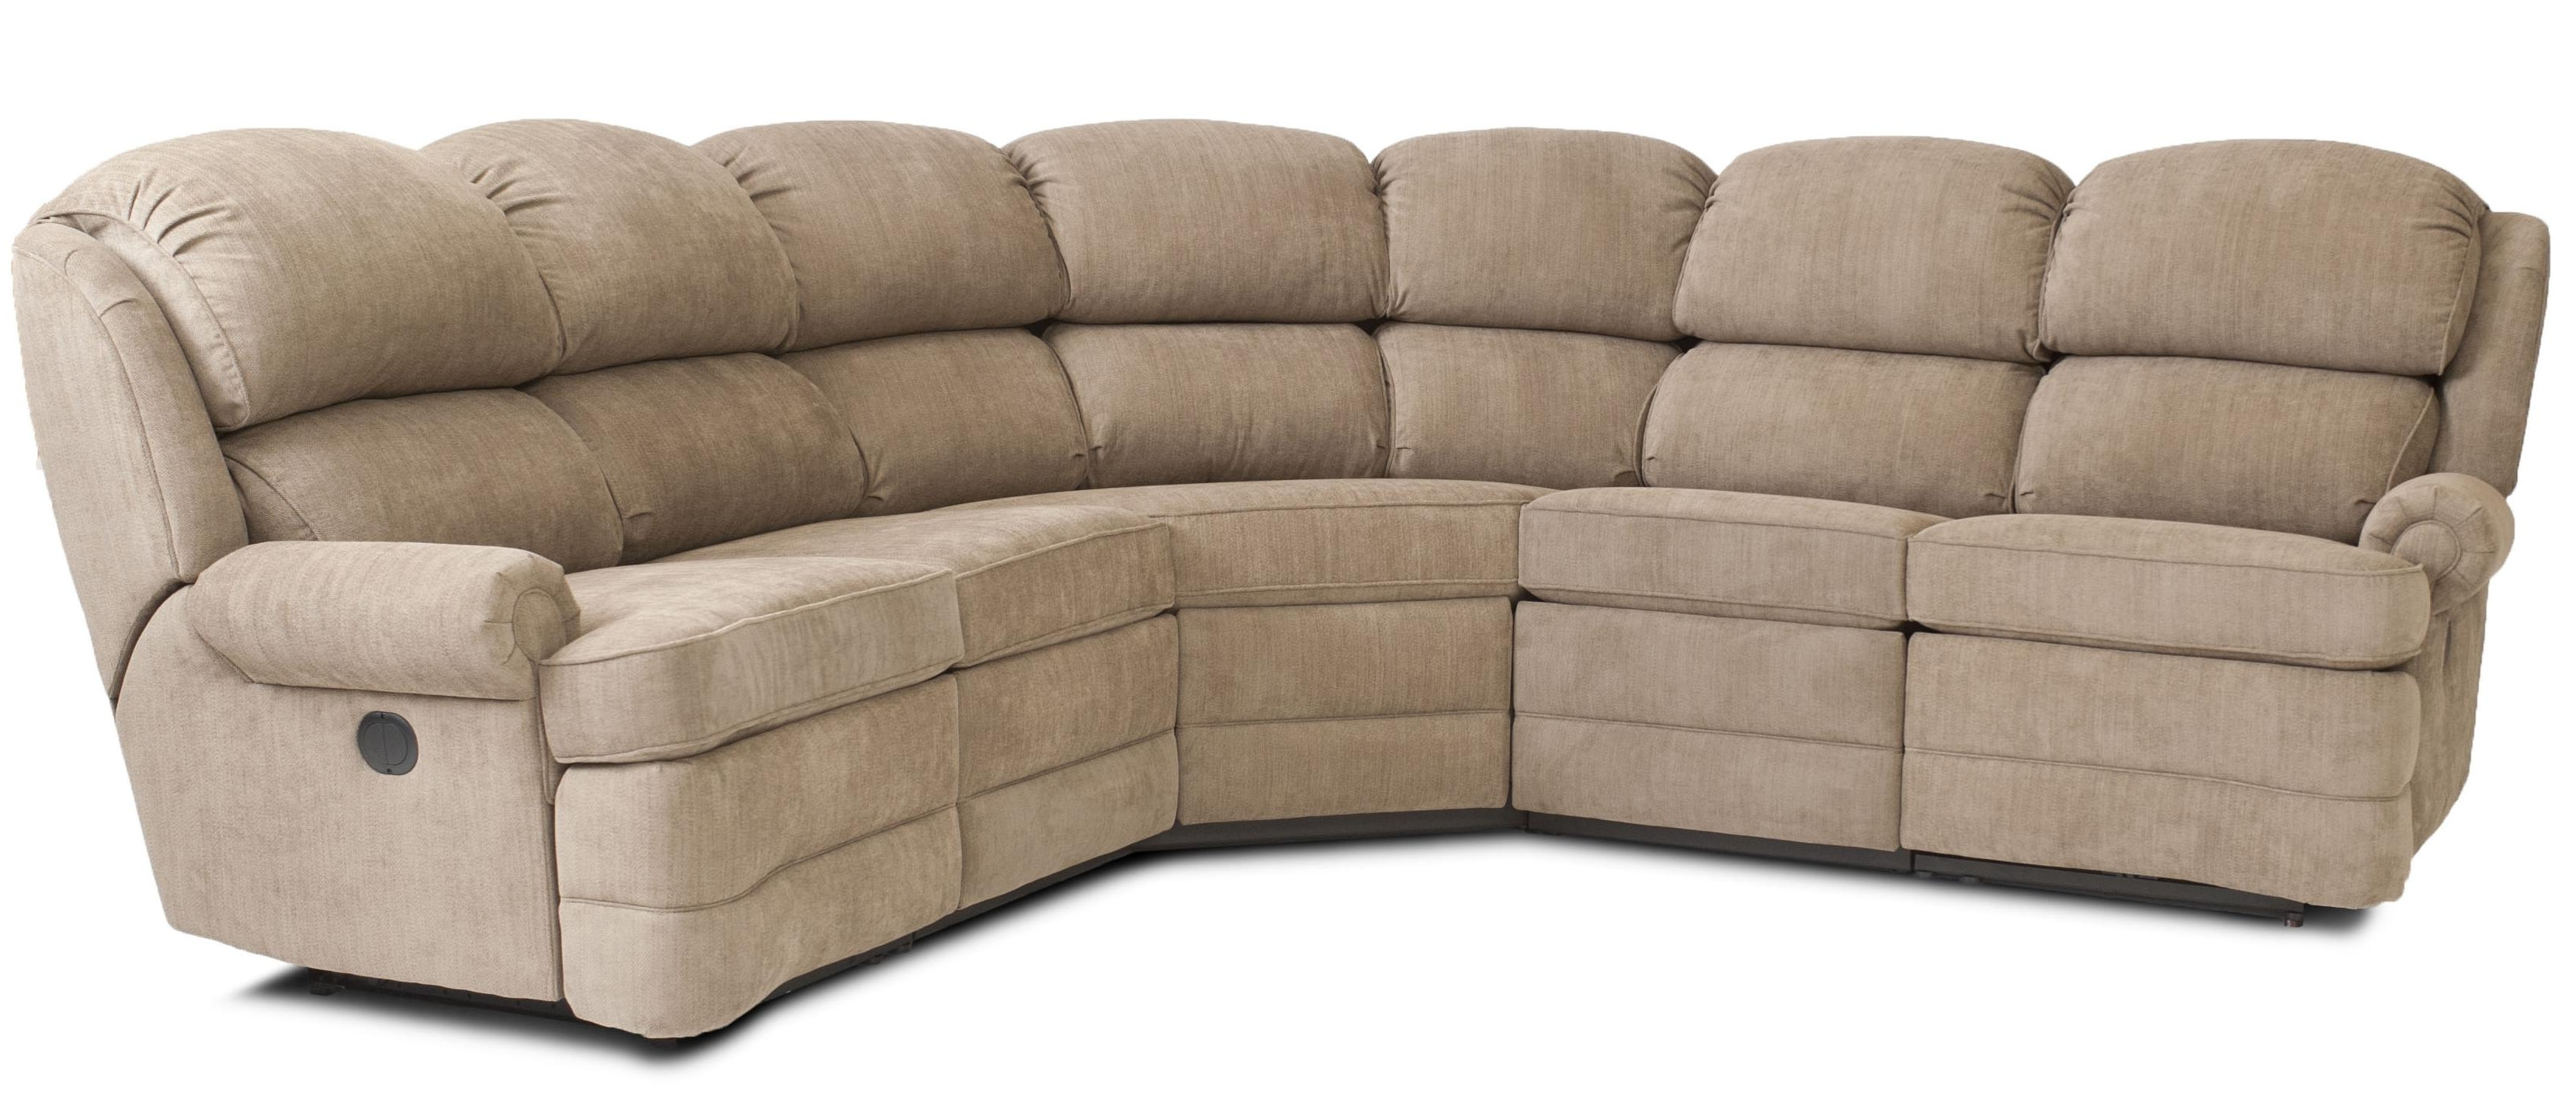 Most Recently Released Beautiful Leather Sectional With Chaise And Recliner Gallery For 10X8 Sectional Sofas (View 14 of 15)